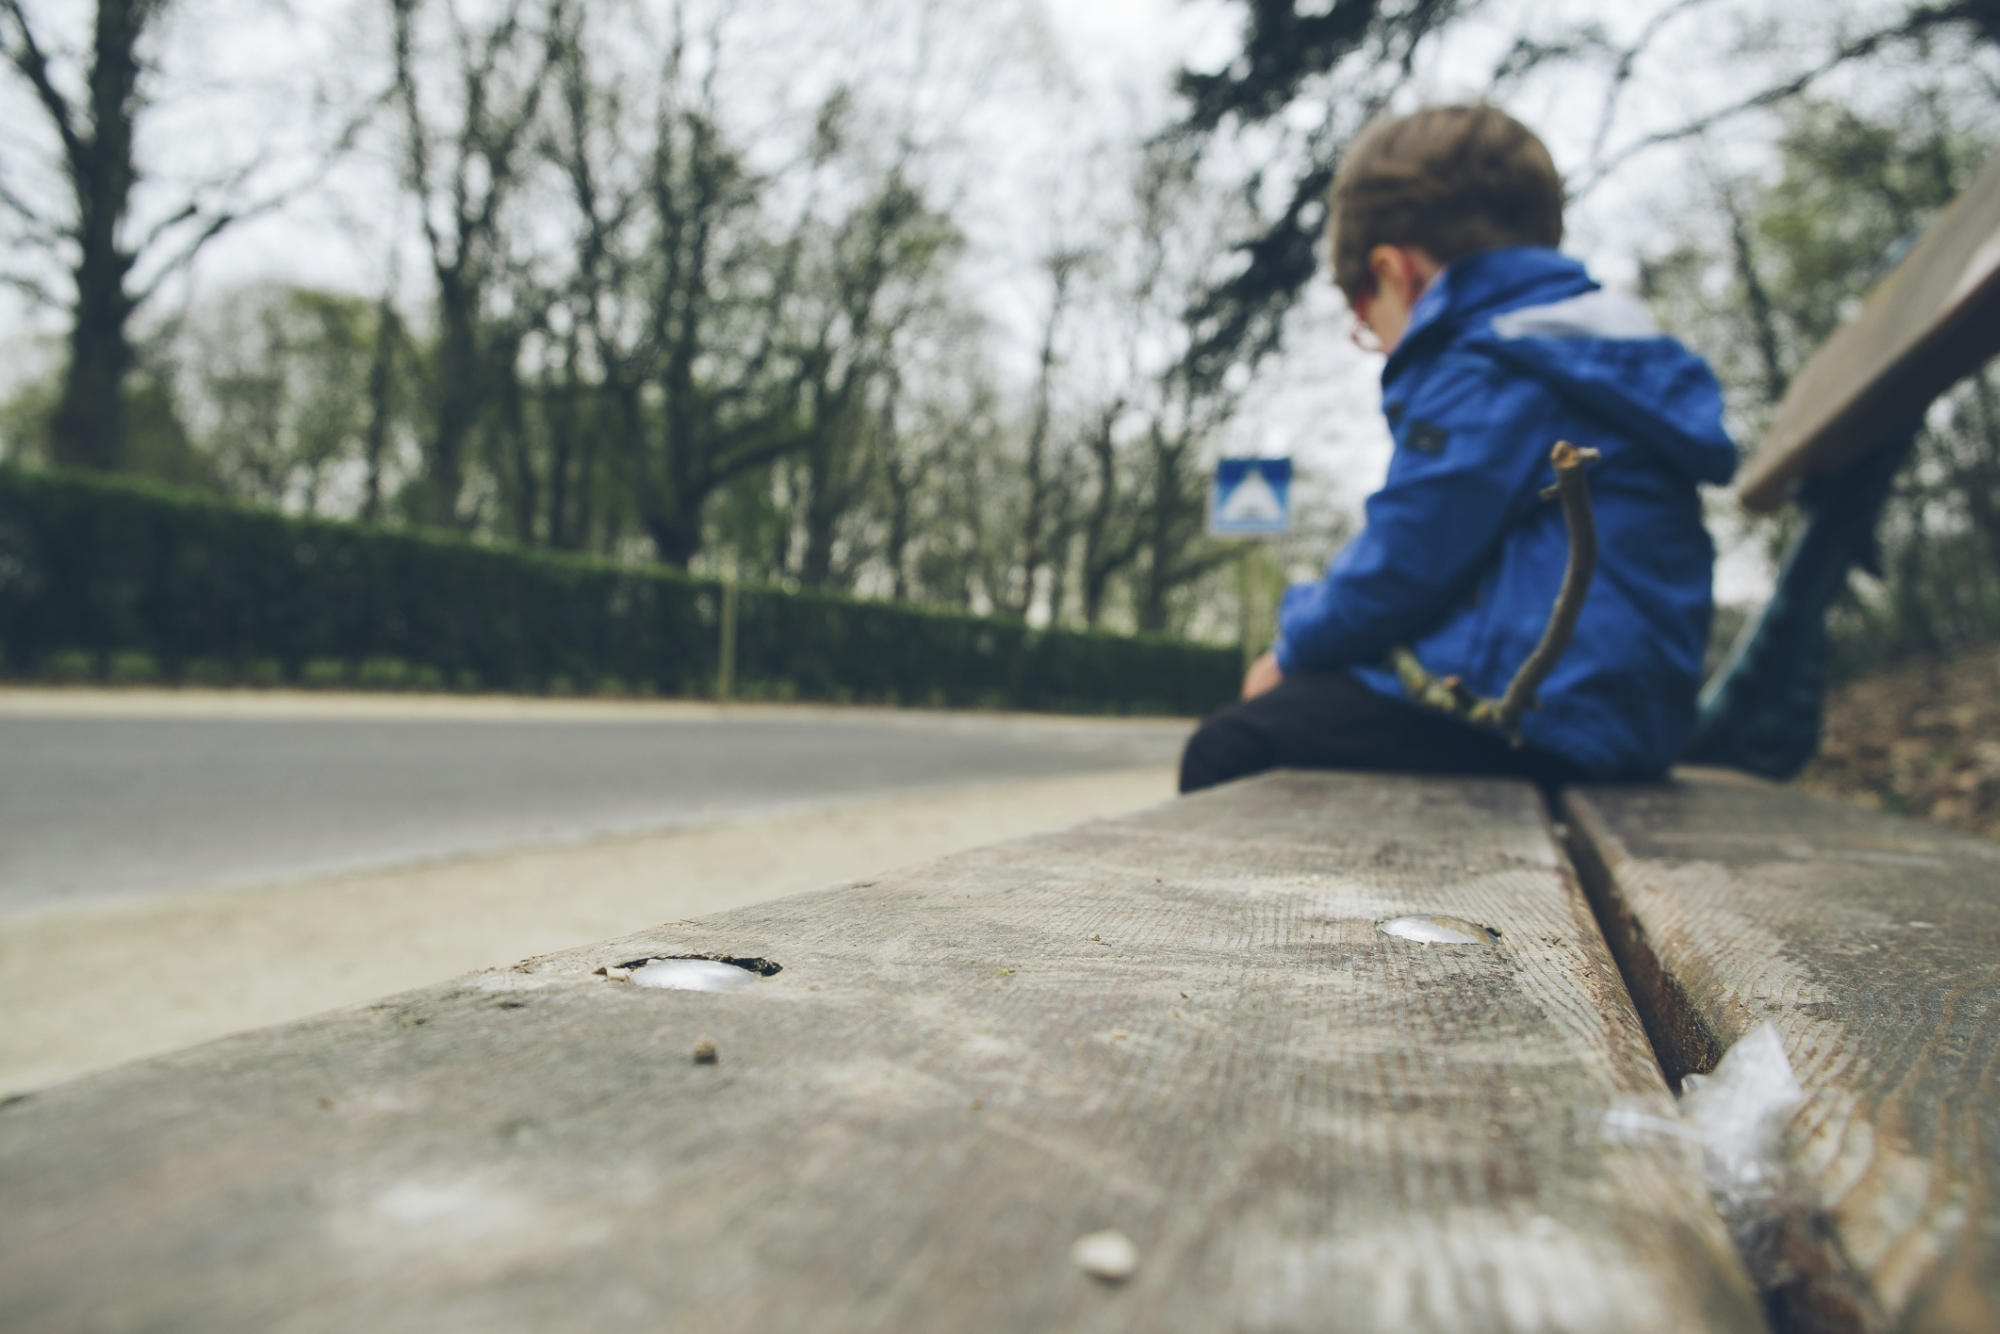 Welfare agencies do not have the resources to cater for thousands of children in need. Picture: file image